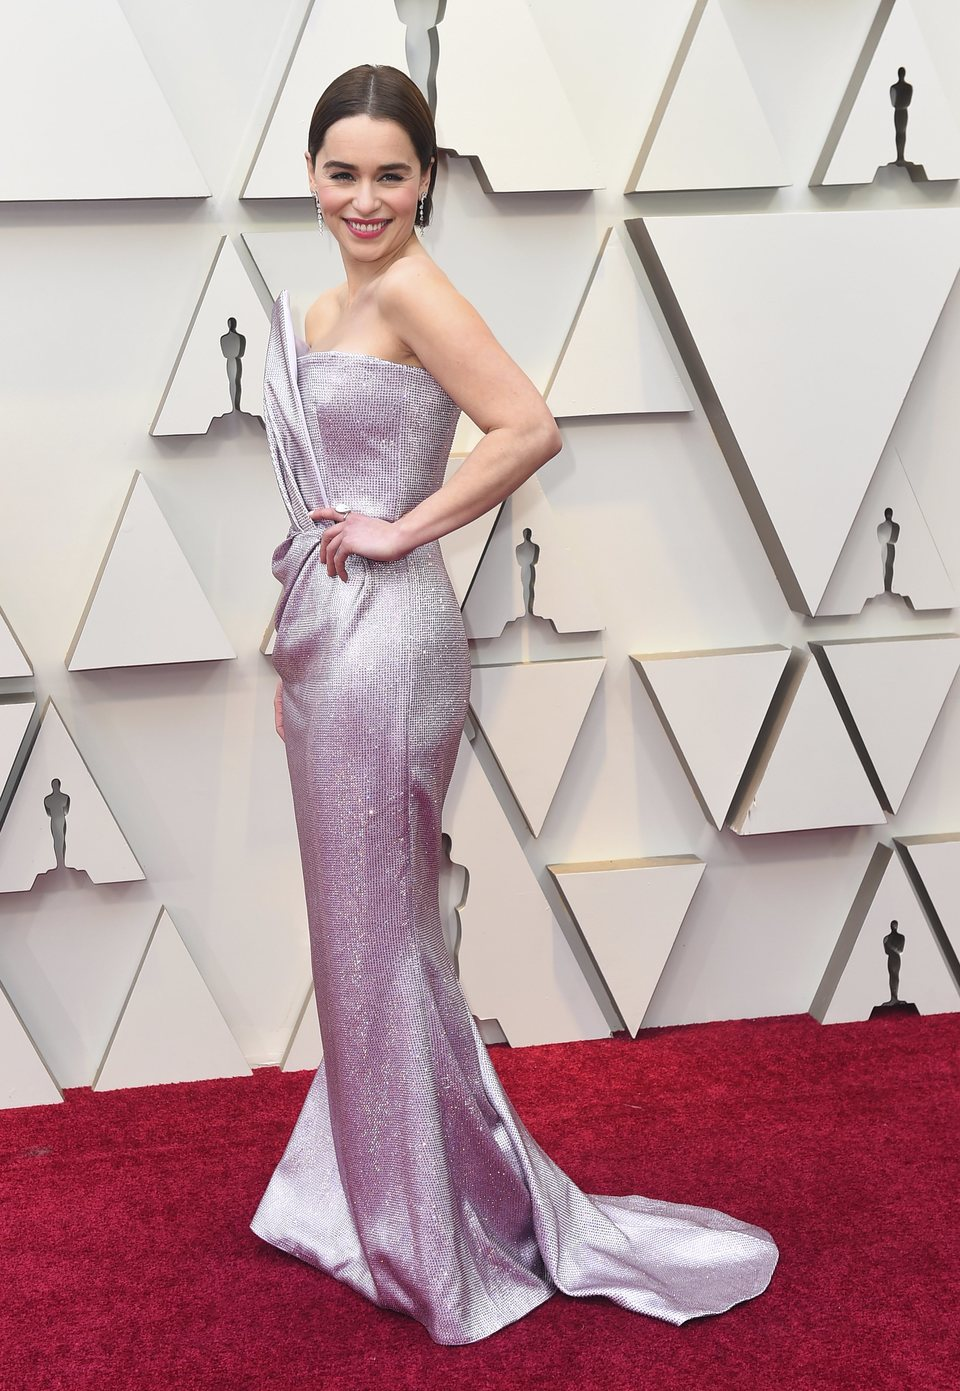 Emilia Clarke at the Oscars 2019 red carpet